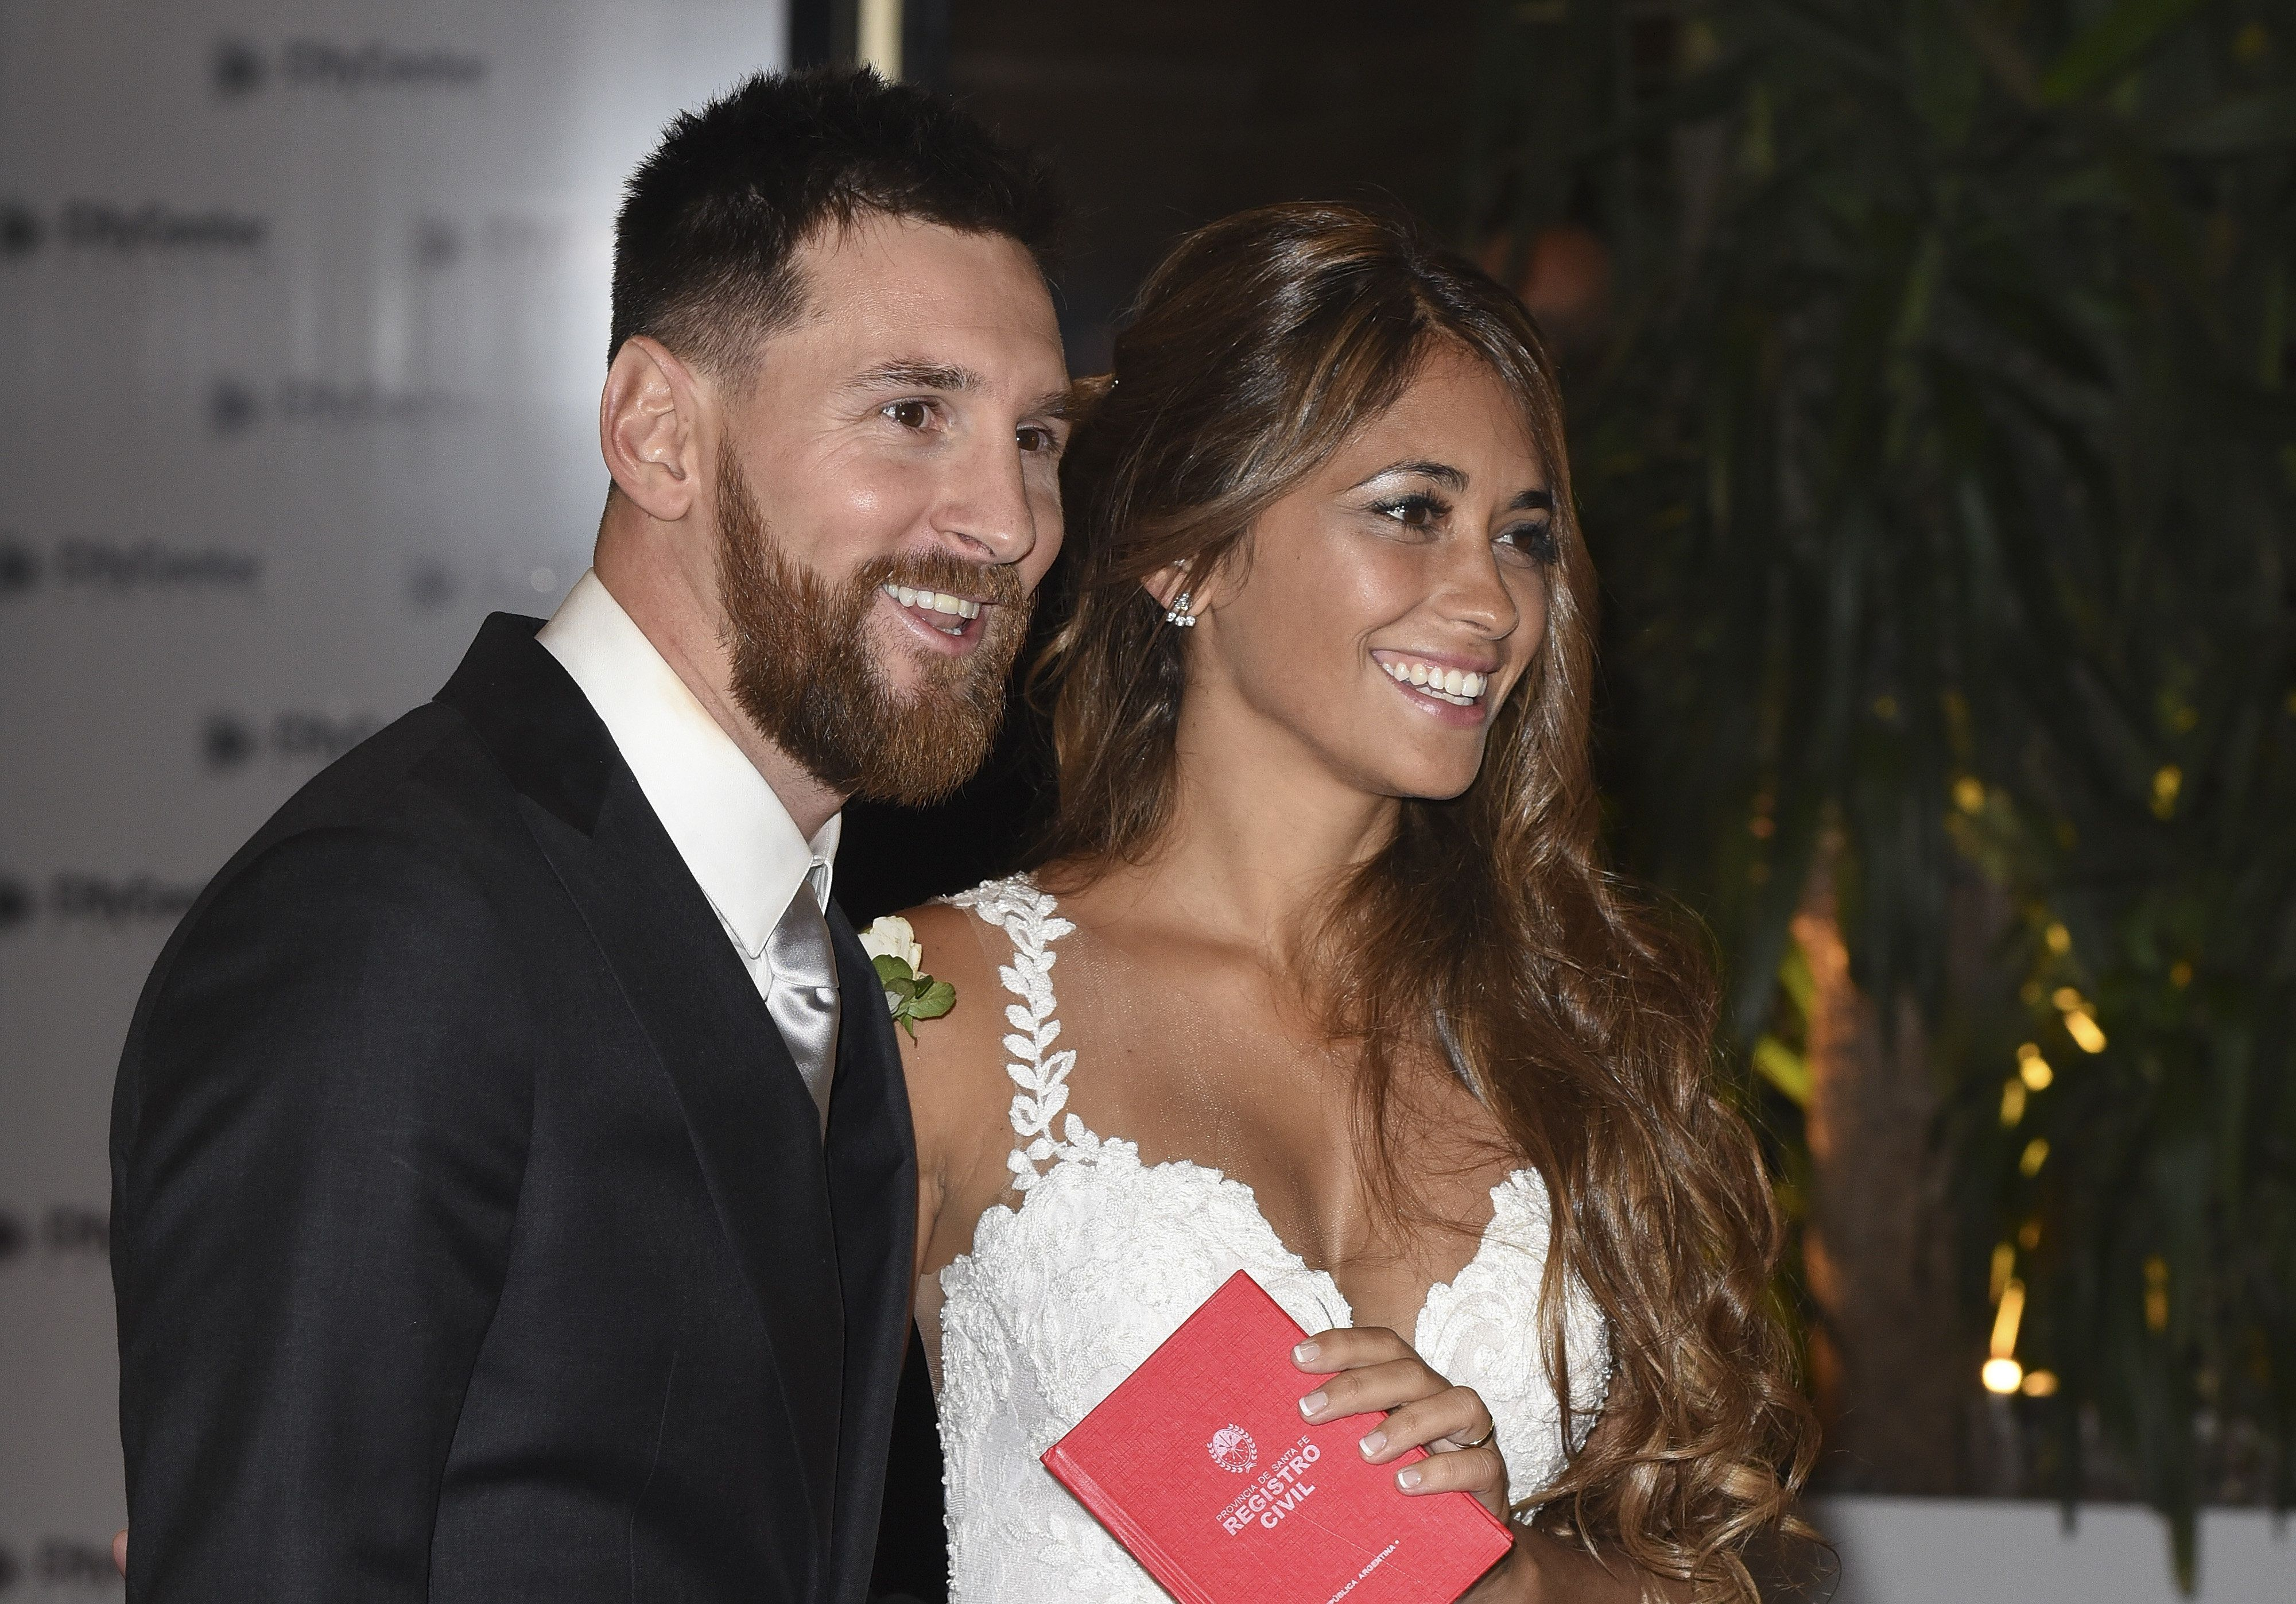 Lionel Messi Looked Dapper In A Made-To-Measure Giorgio Armani Suit On His Wedding